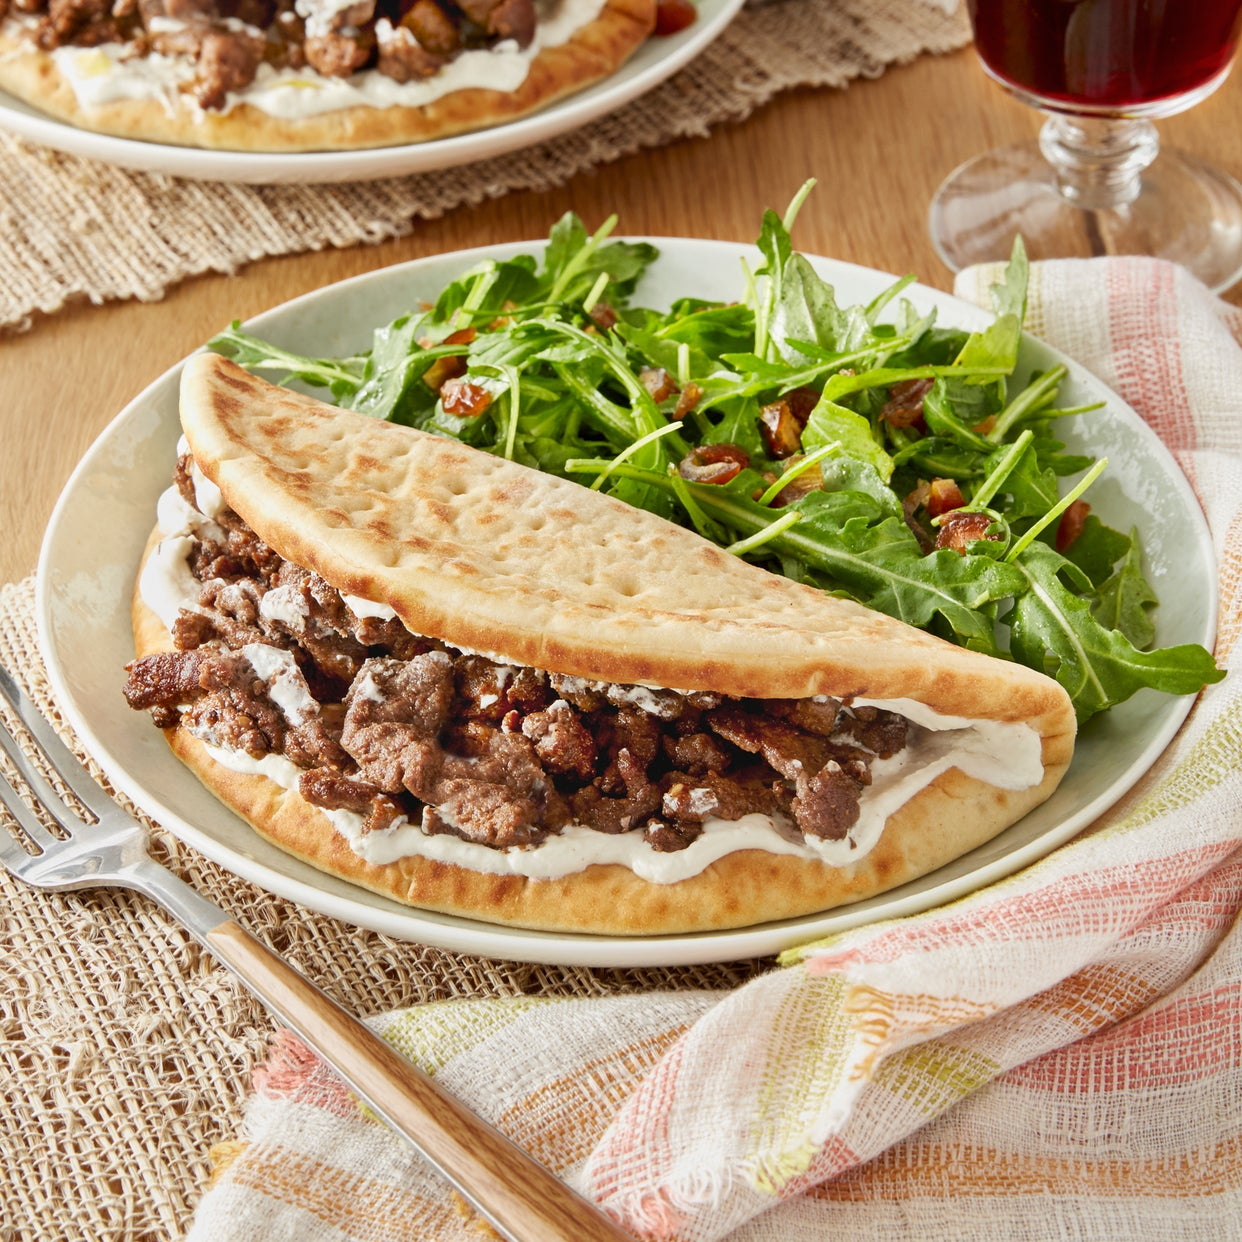 Spiced Beef Pitas & Garlic Labneh with Arugula & Date Salad